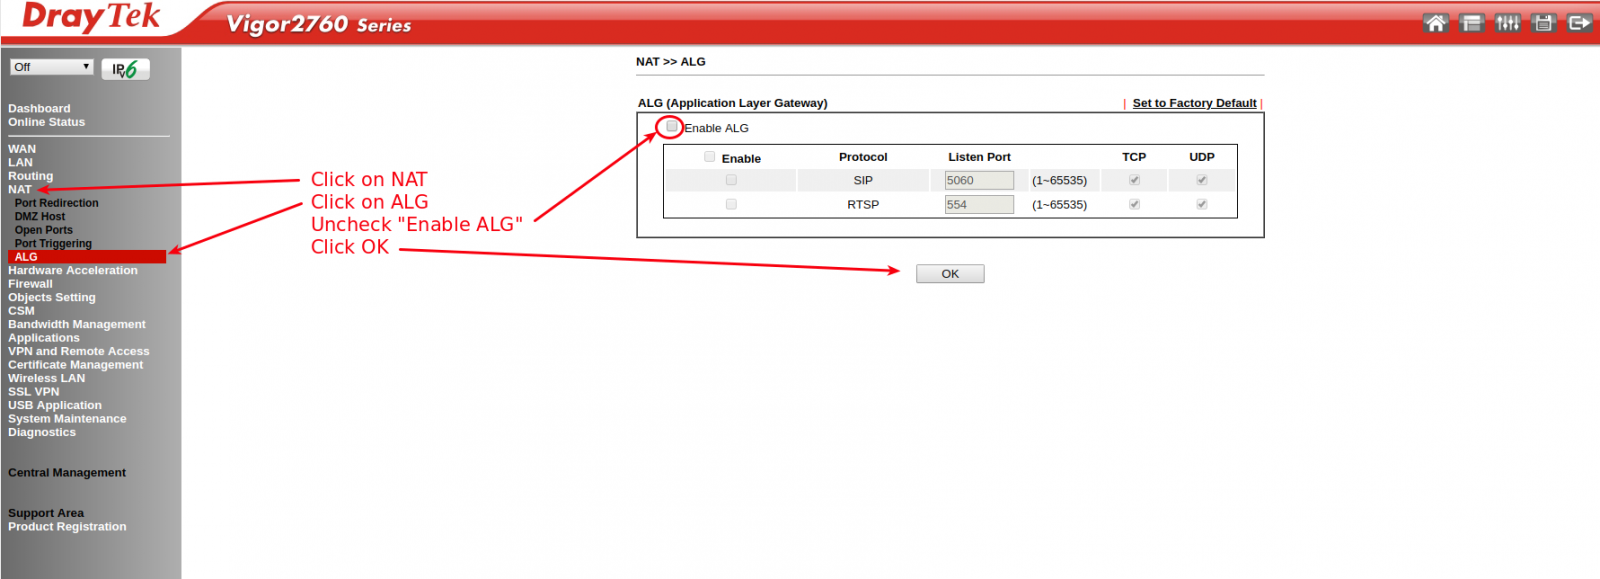 Screenshot of DrayTek Vigor 2760 web interface detailing how to disable SIP ALG